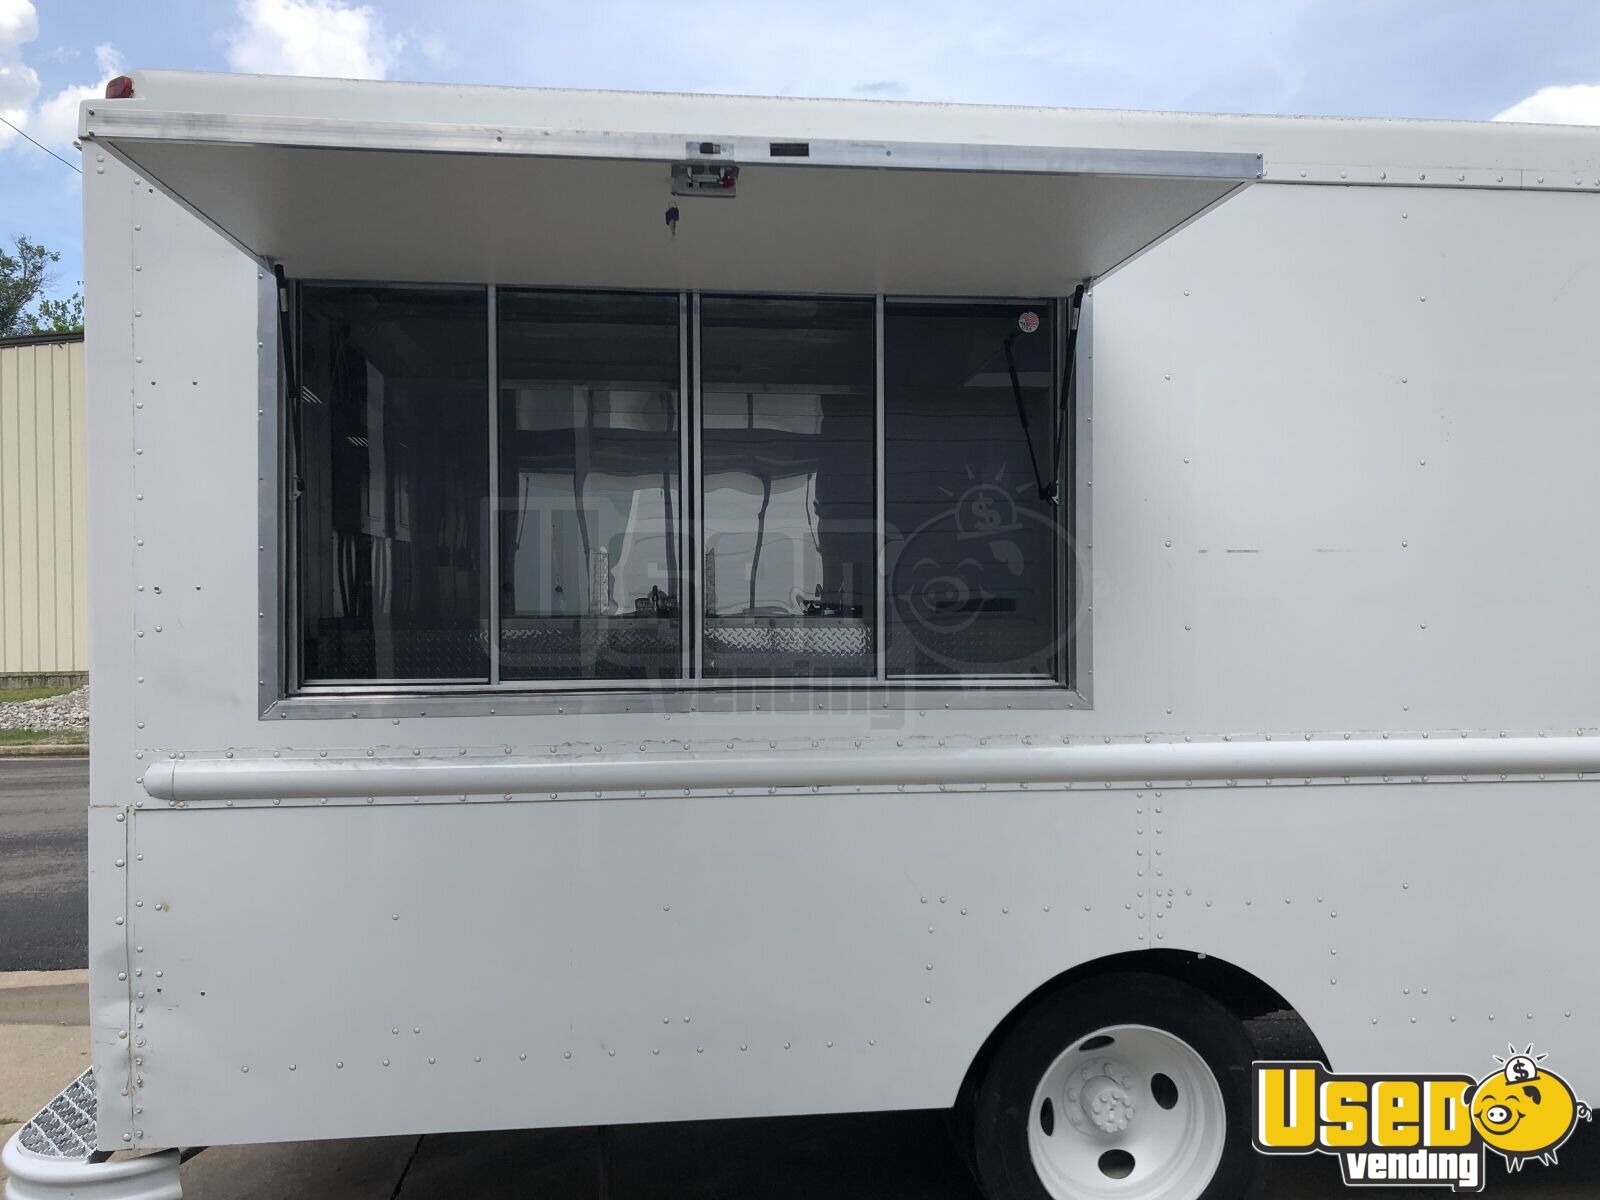 1999 Workhorse P32 All-purpose Food Truck Stainless Steel Wall Covers Missouri Diesel Engine for Sale - 3